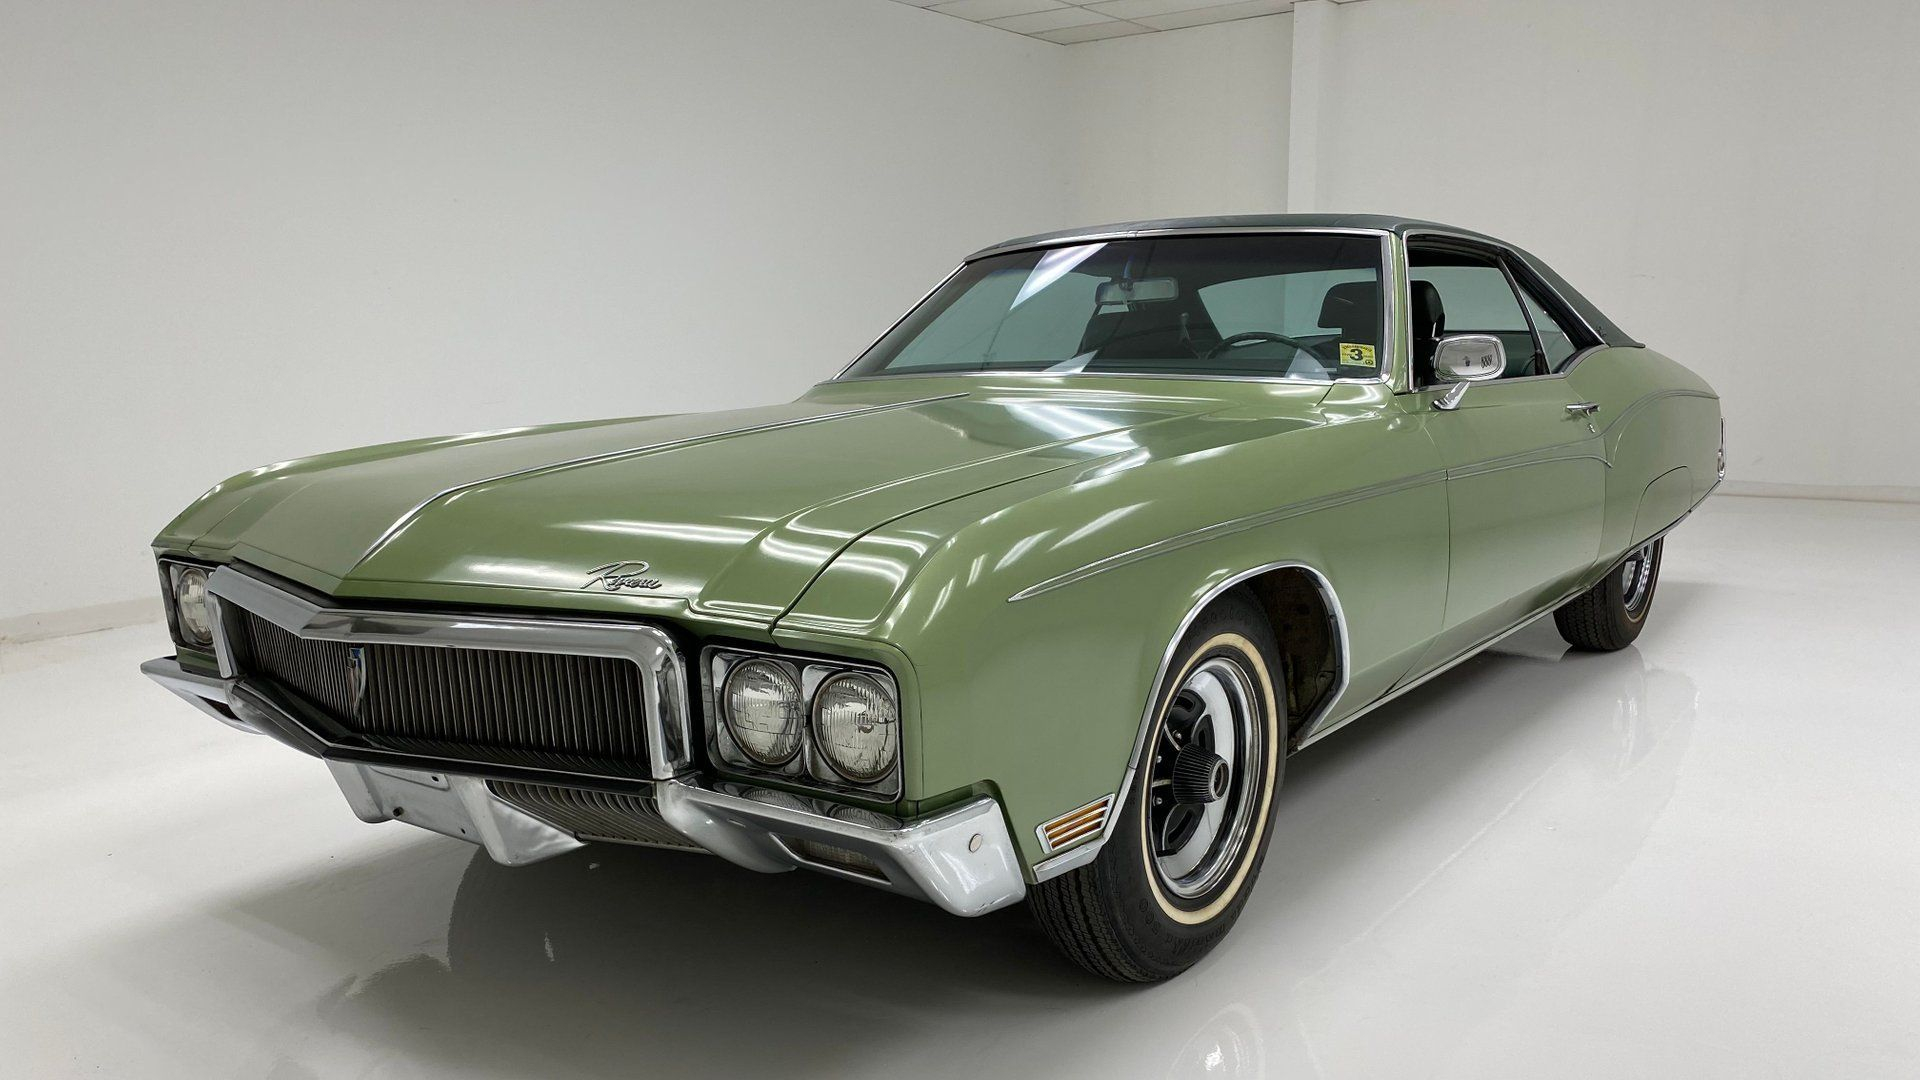 Original 1970 Buick Riviera Provides An Affordable Option New 2021 Buick Riviera Custom, Price, Parts